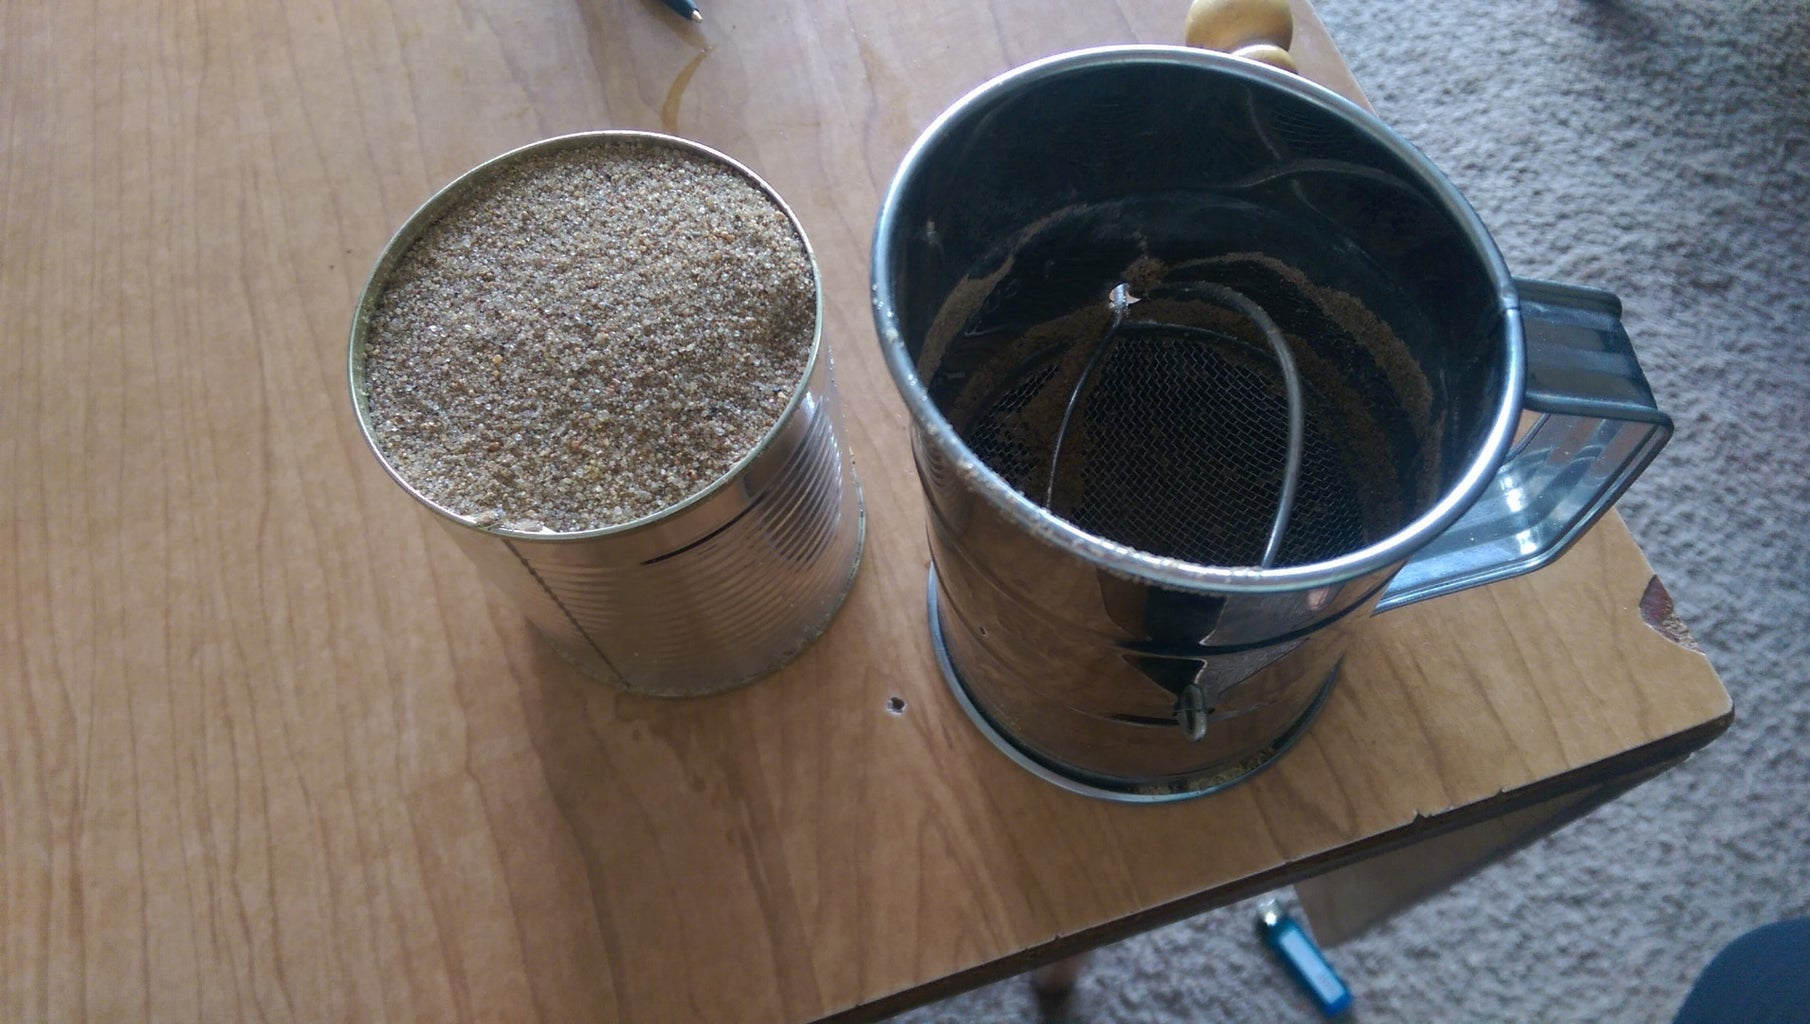 Acquiring Sand for Tempering